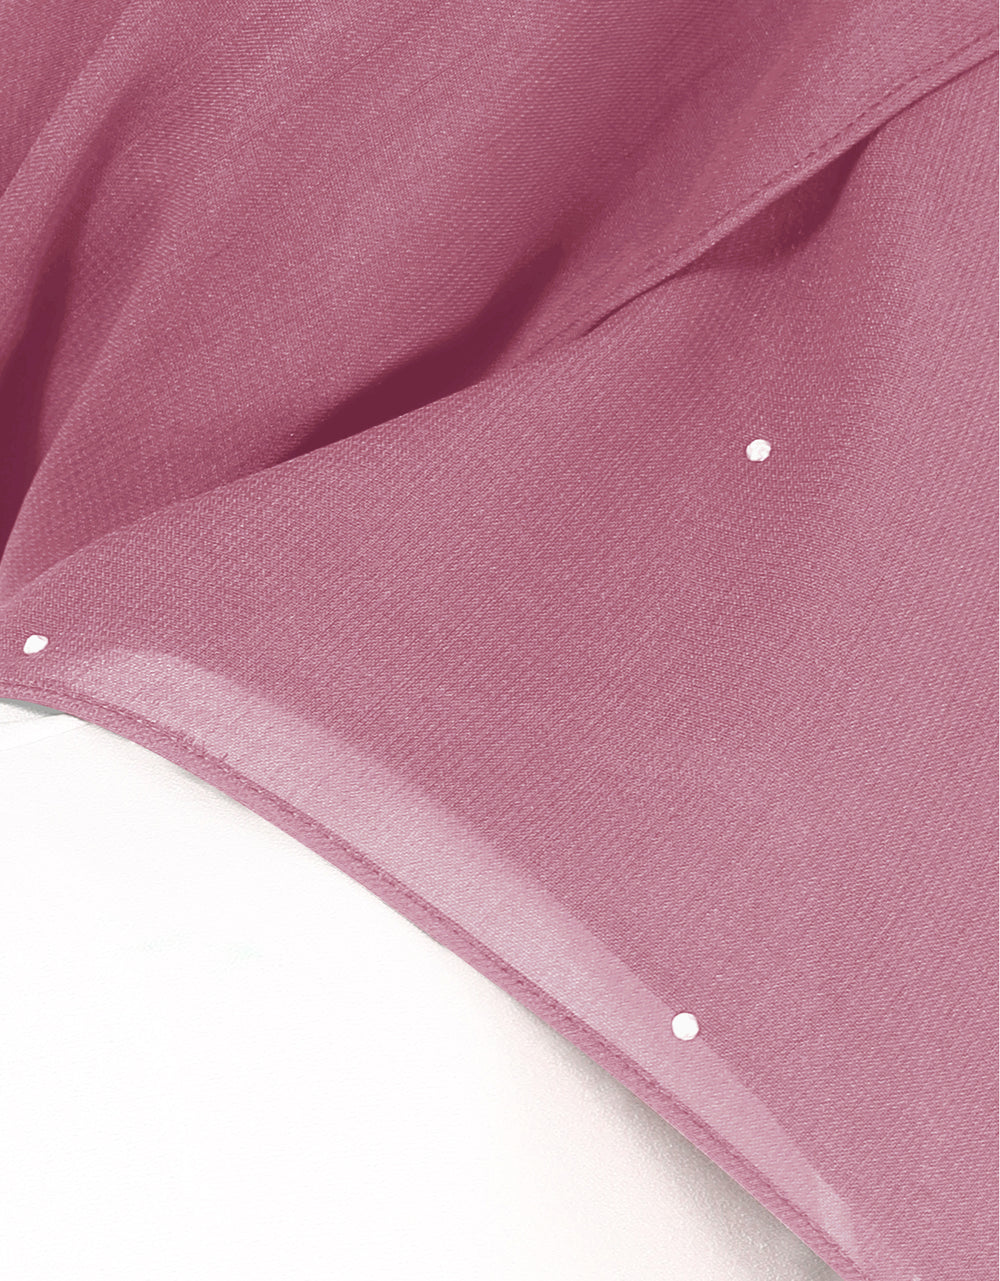 Chiffon Square Bawal With Stone Col. 26 (Plum Pink)